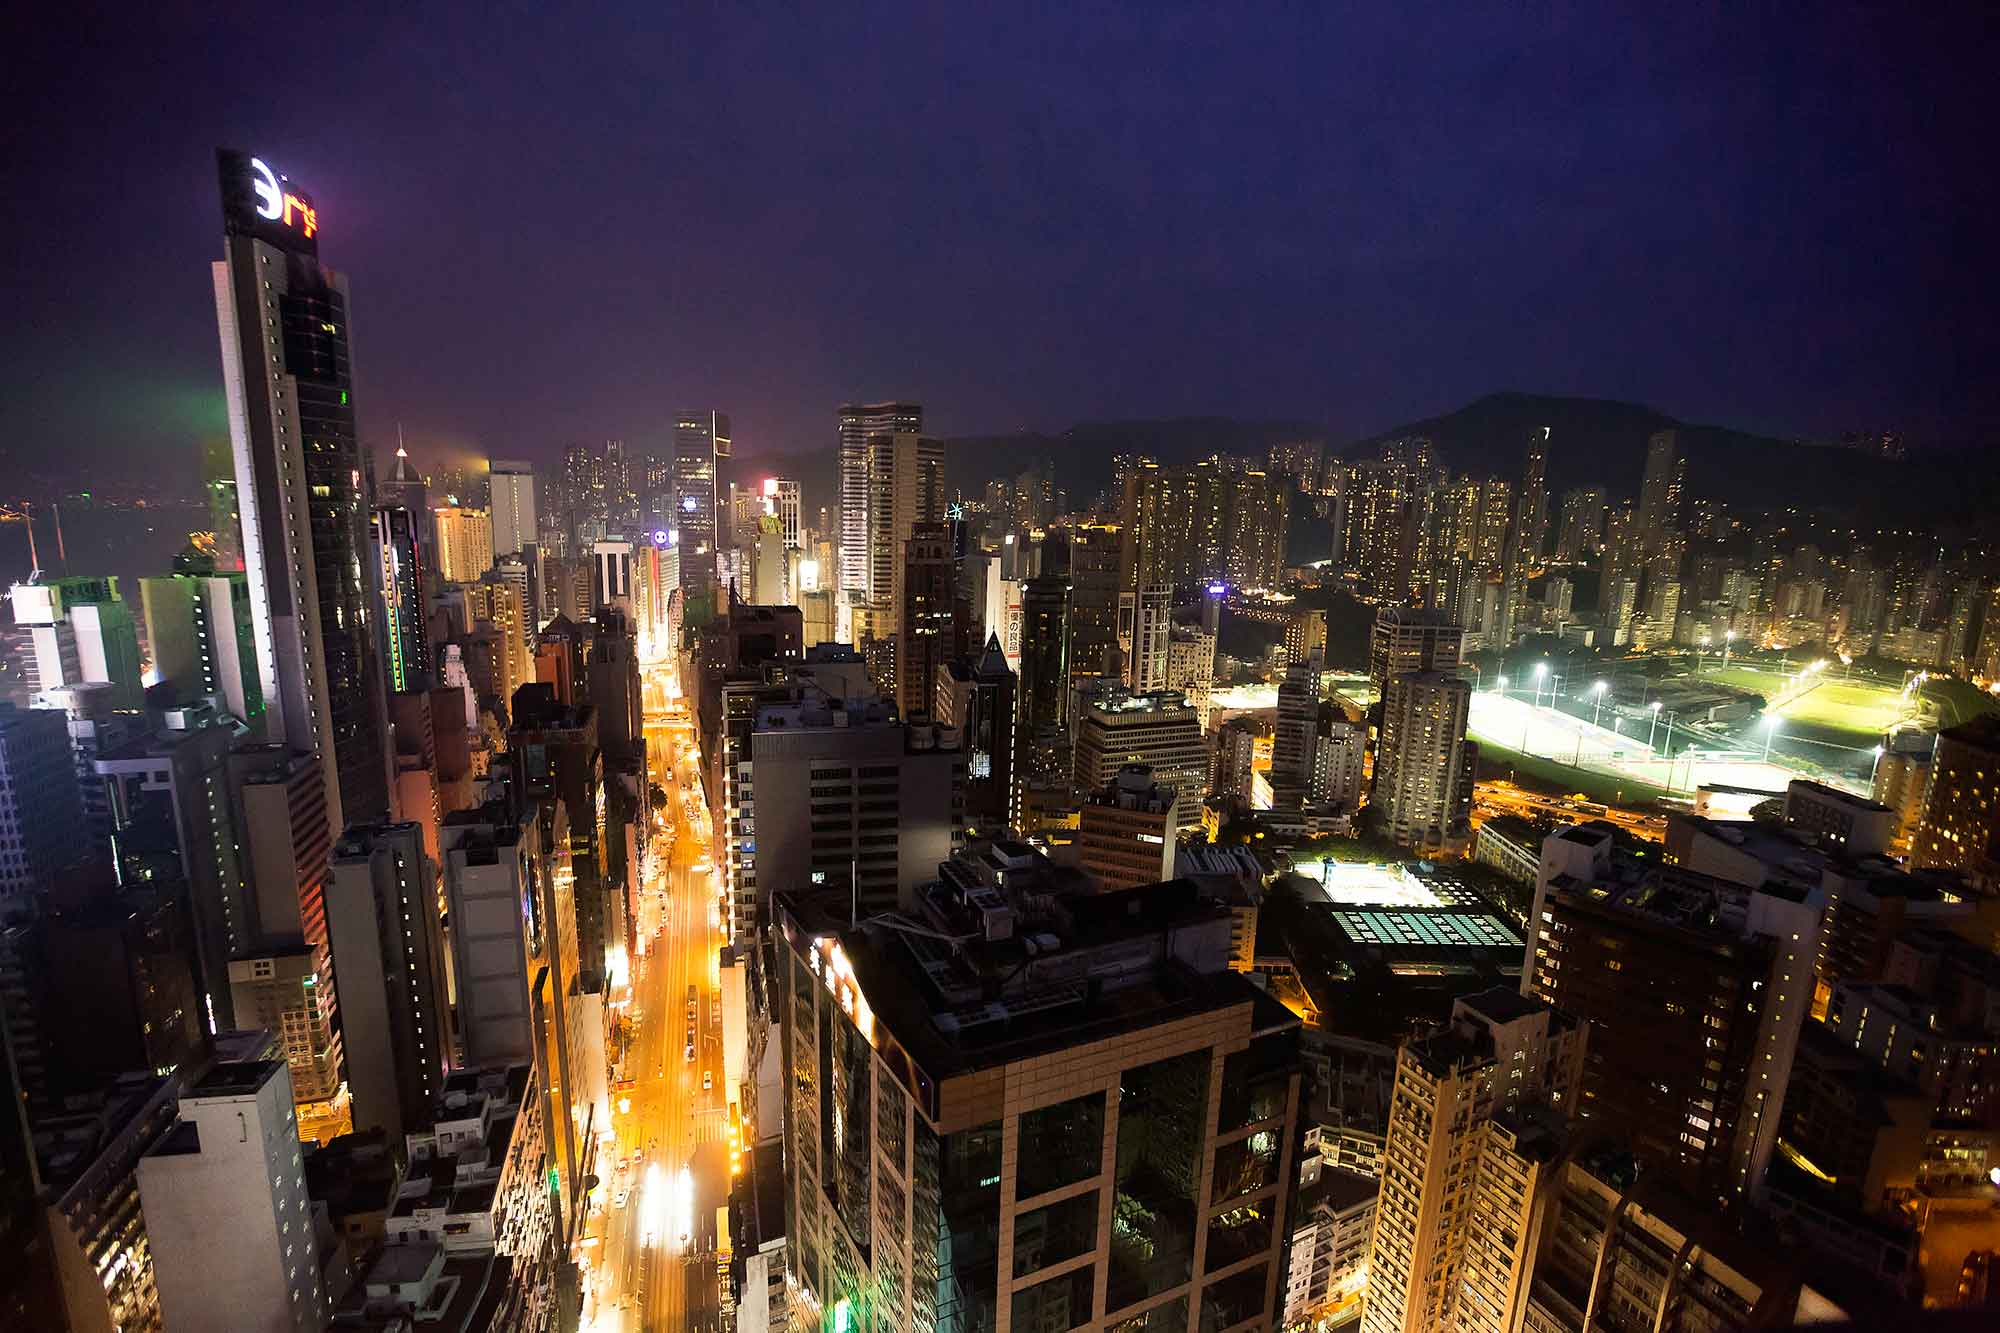 View from the rooftop bar Wooloomooloo in Wanchai, Hong Kong. © Ulli Maier & Nisa Maier